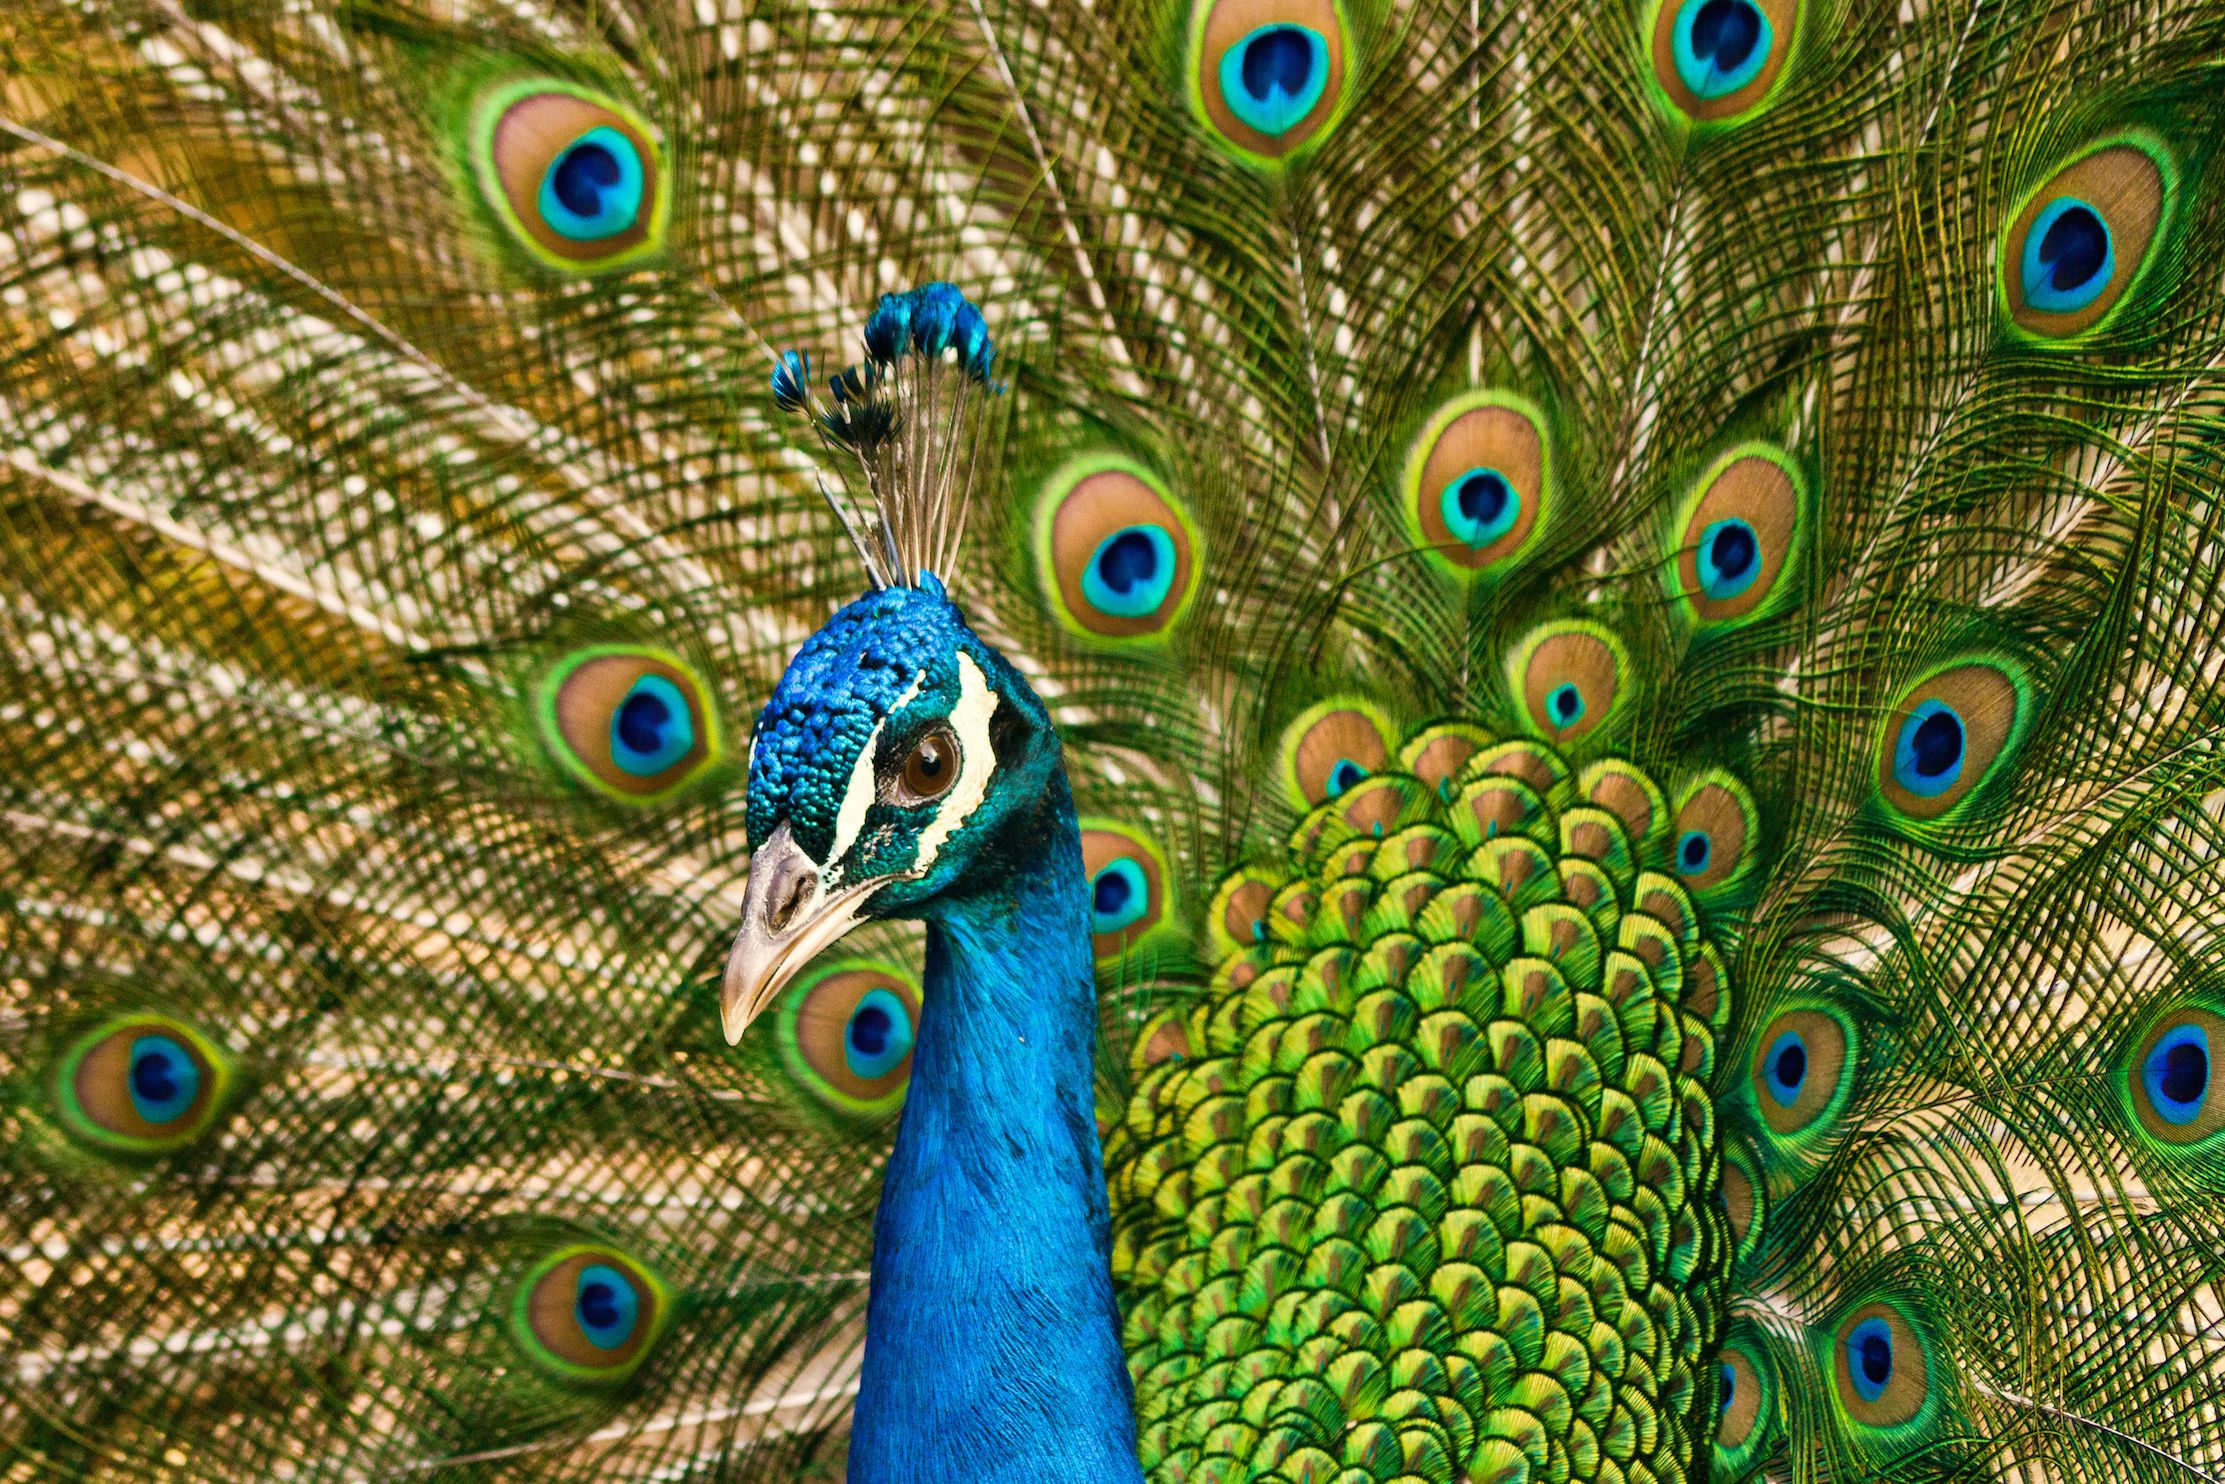 What does a pheasant symbolize gallery symbols and meanings what does a pheasant symbolize gallery symbols and meanings what does a pheasant symbolize choice image biocorpaavc Choice Image